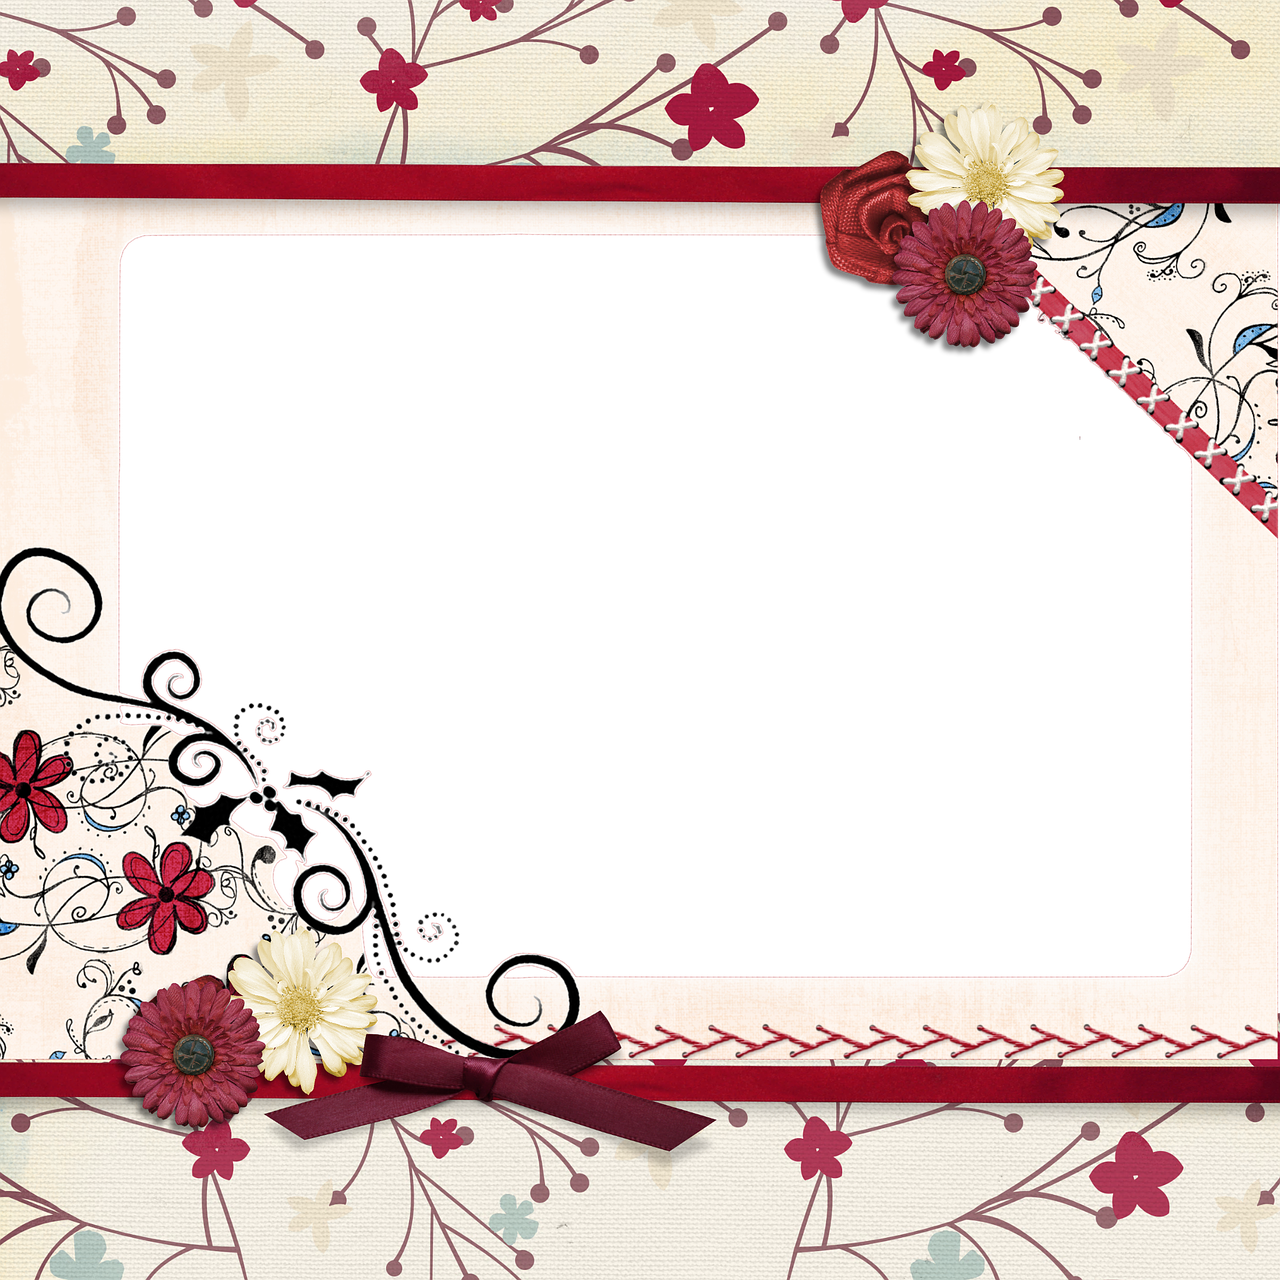 Free image on pixabay. Scrapbook clipart scrapbook page